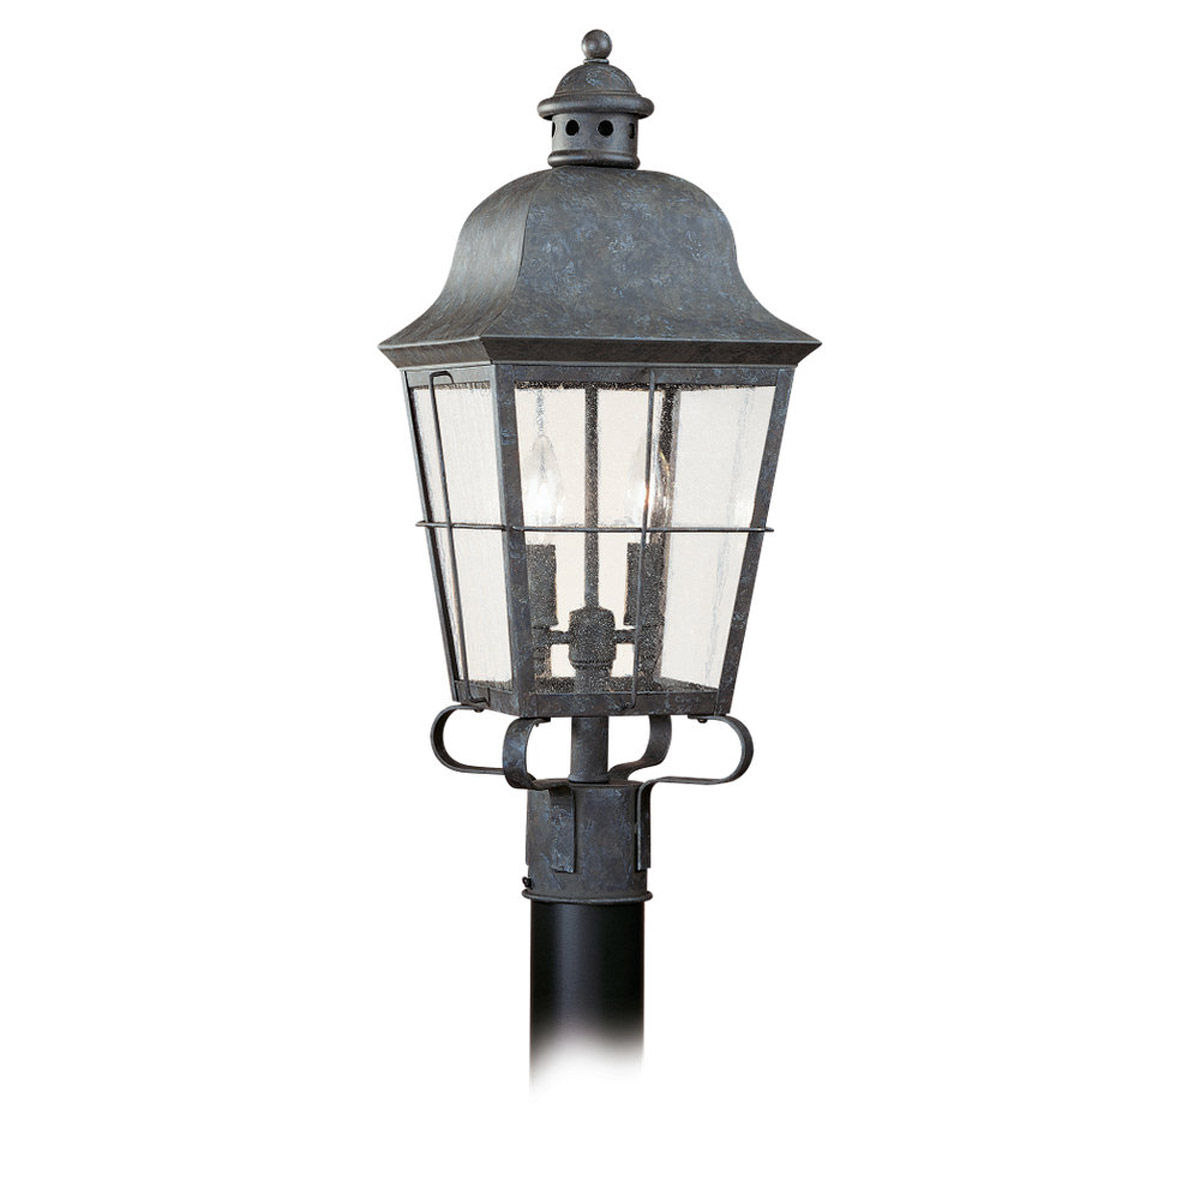 Sea Gull Lighting Chatham 2 Light Outdoor Post Lantern in Oxidized Bronze 8262-46